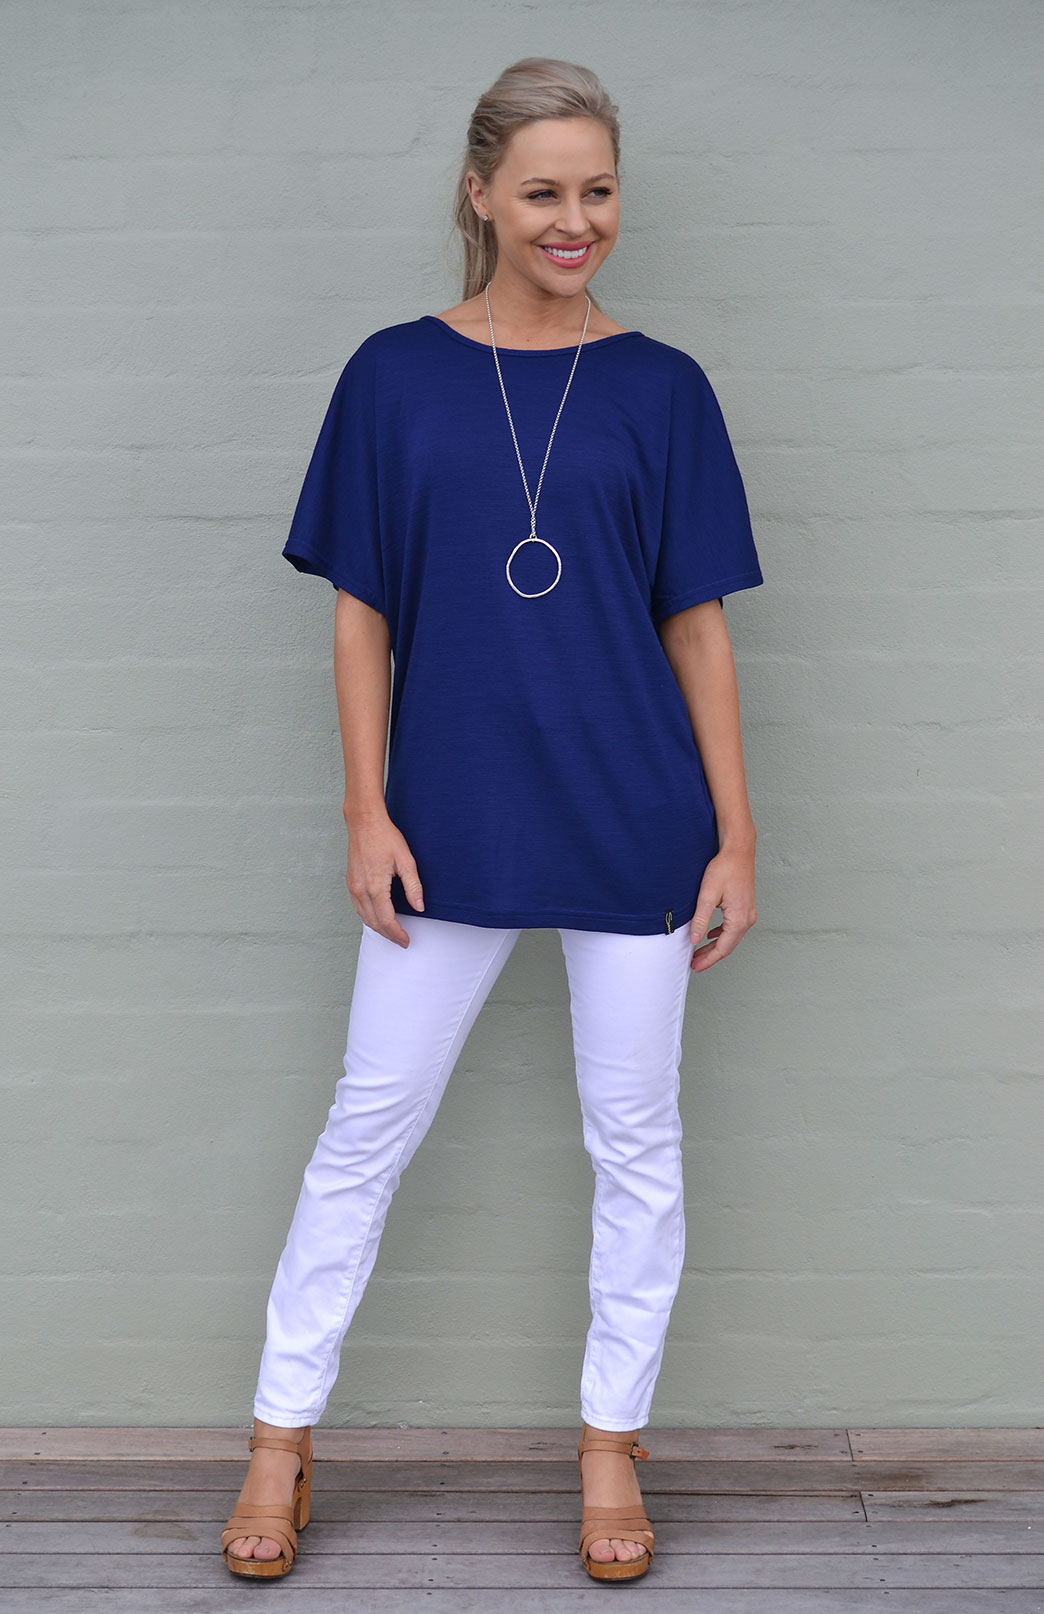 Loose T-Shirt - Women's Loose Wool Sapphire Blue Summer Top - Smitten Merino Tasmania Australia